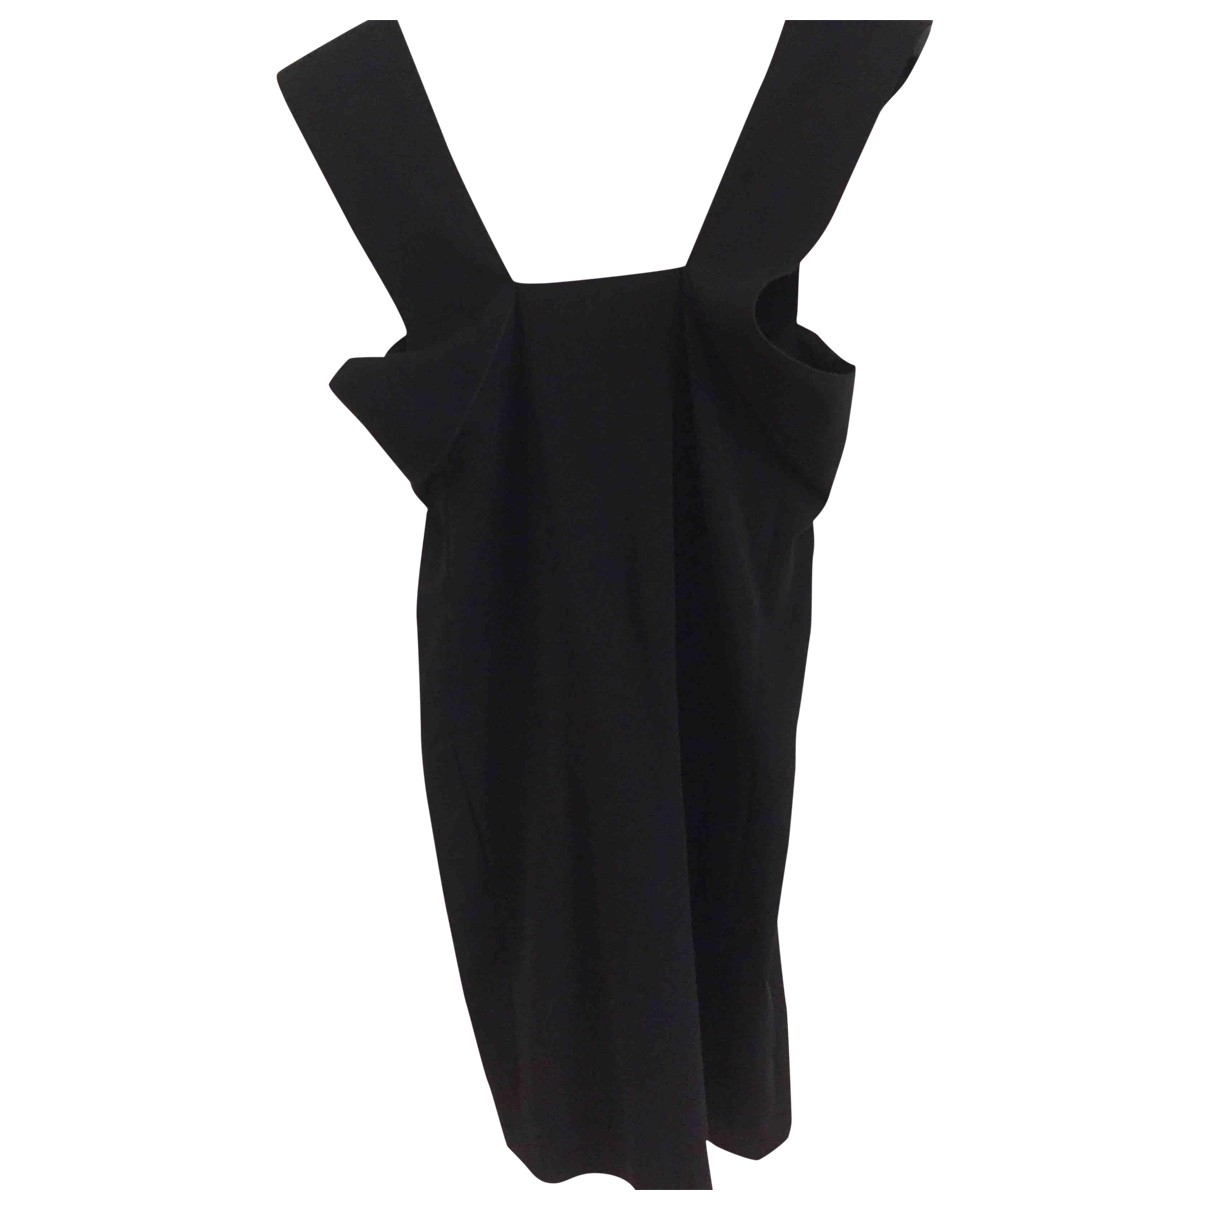 Roland Mouret \N Black Cotton - elasthane dress for Women 36 FR